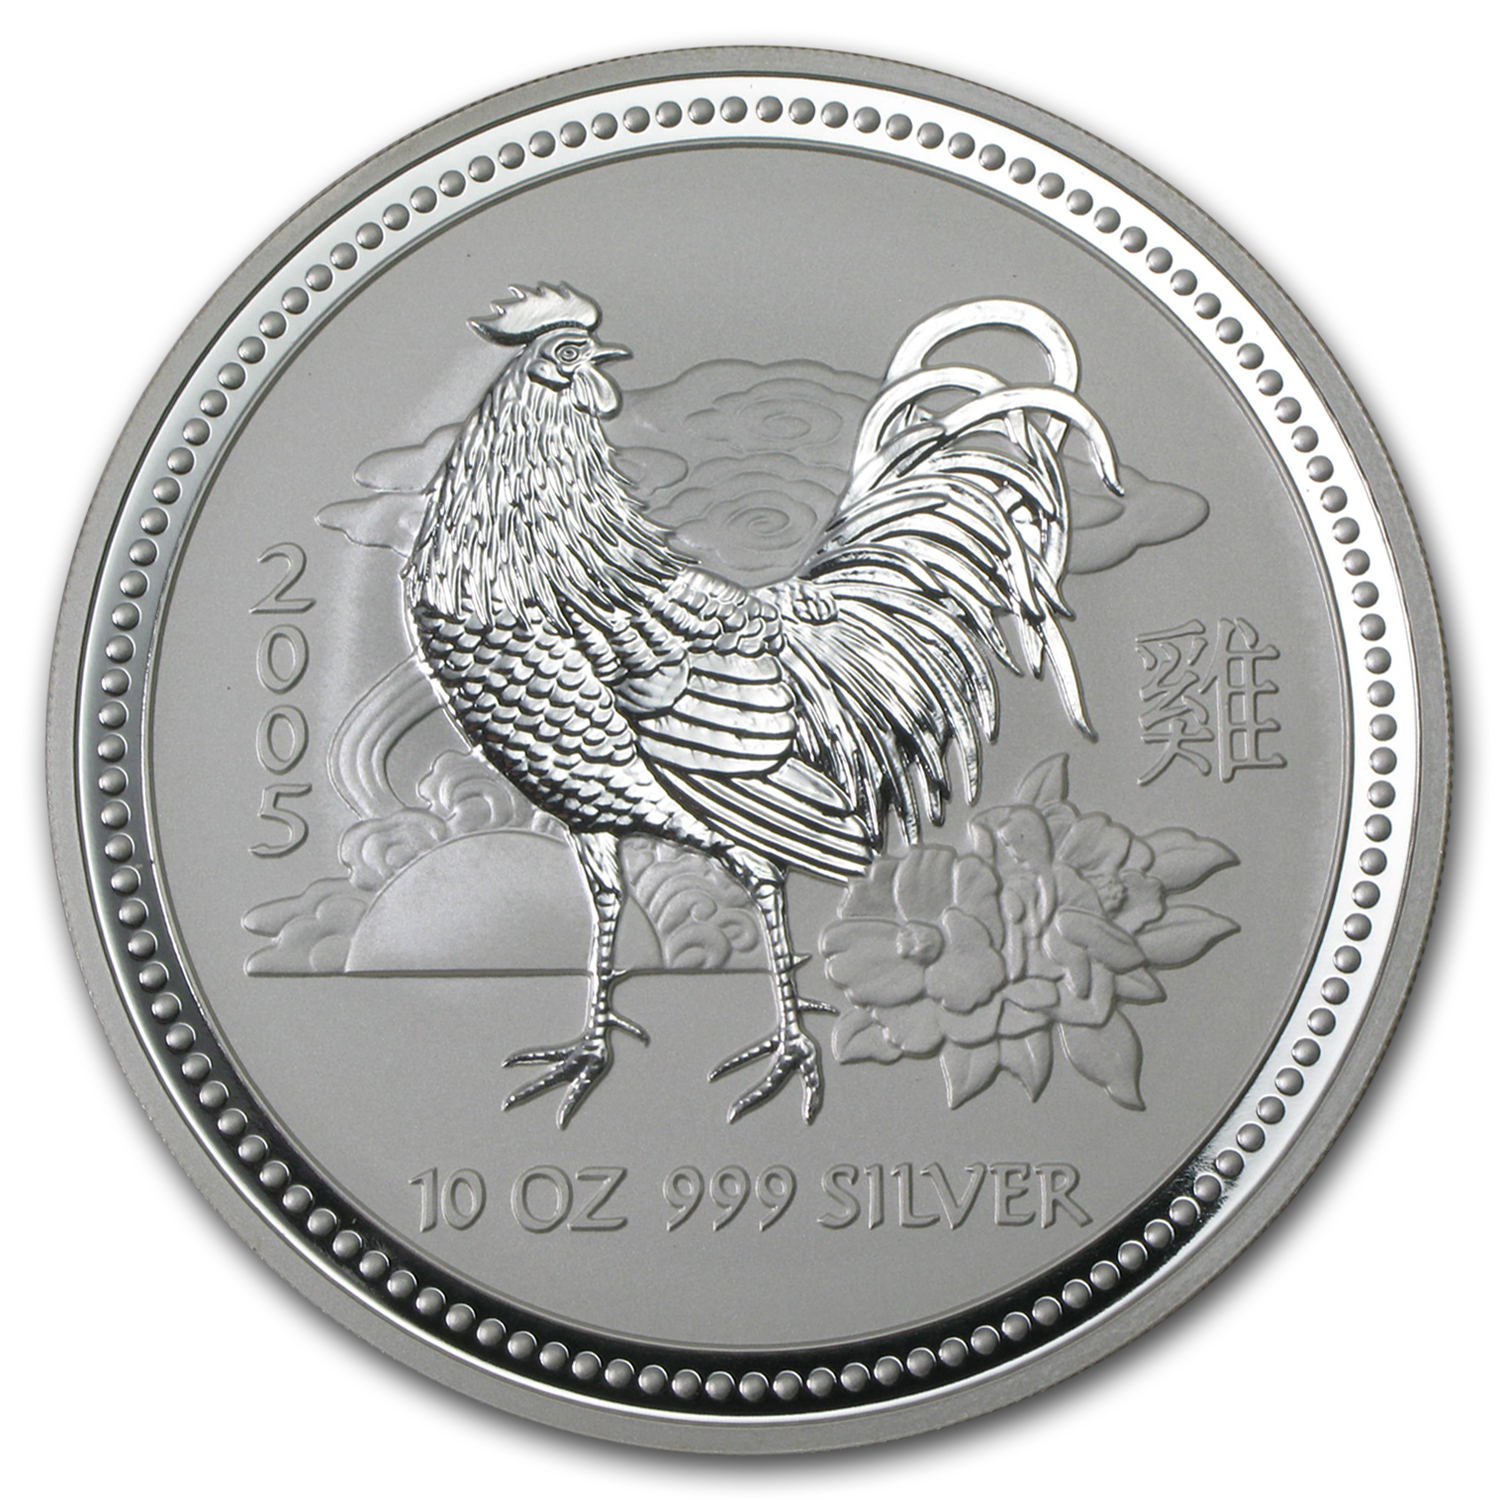 2005 10 oz Silver Lunar Year of the Rooster (Series I)